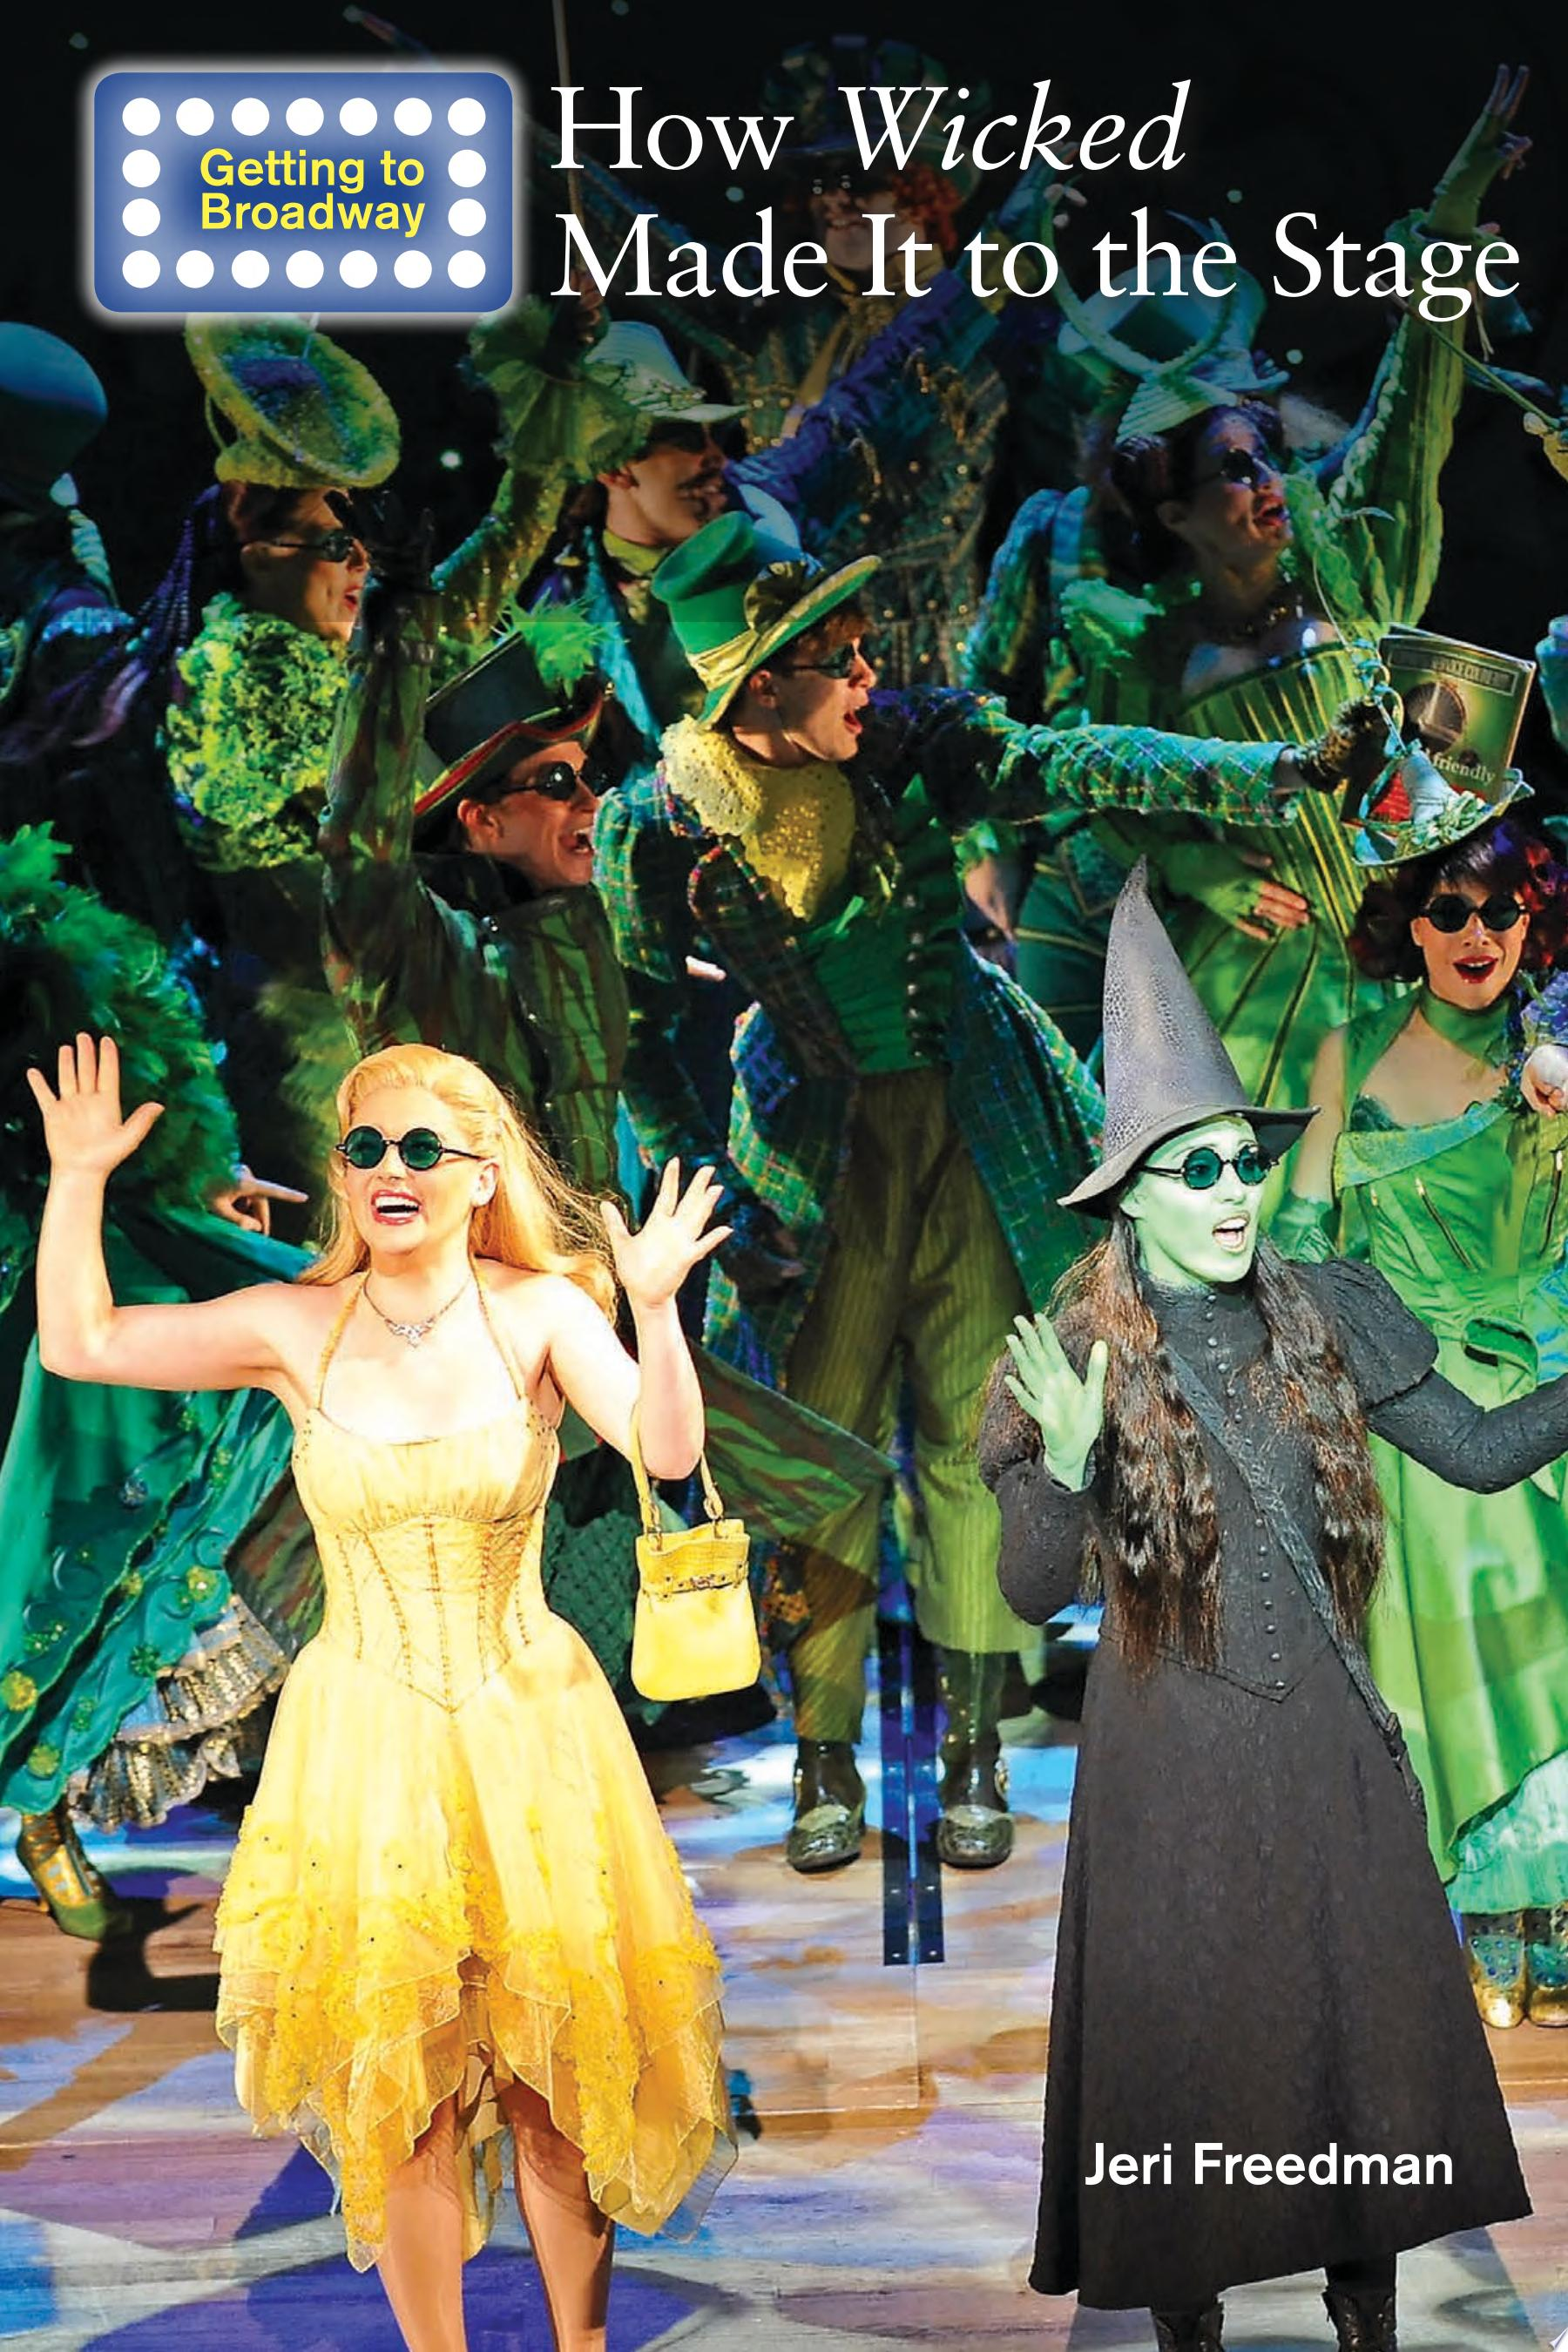 How Wicked Made It to the Stage